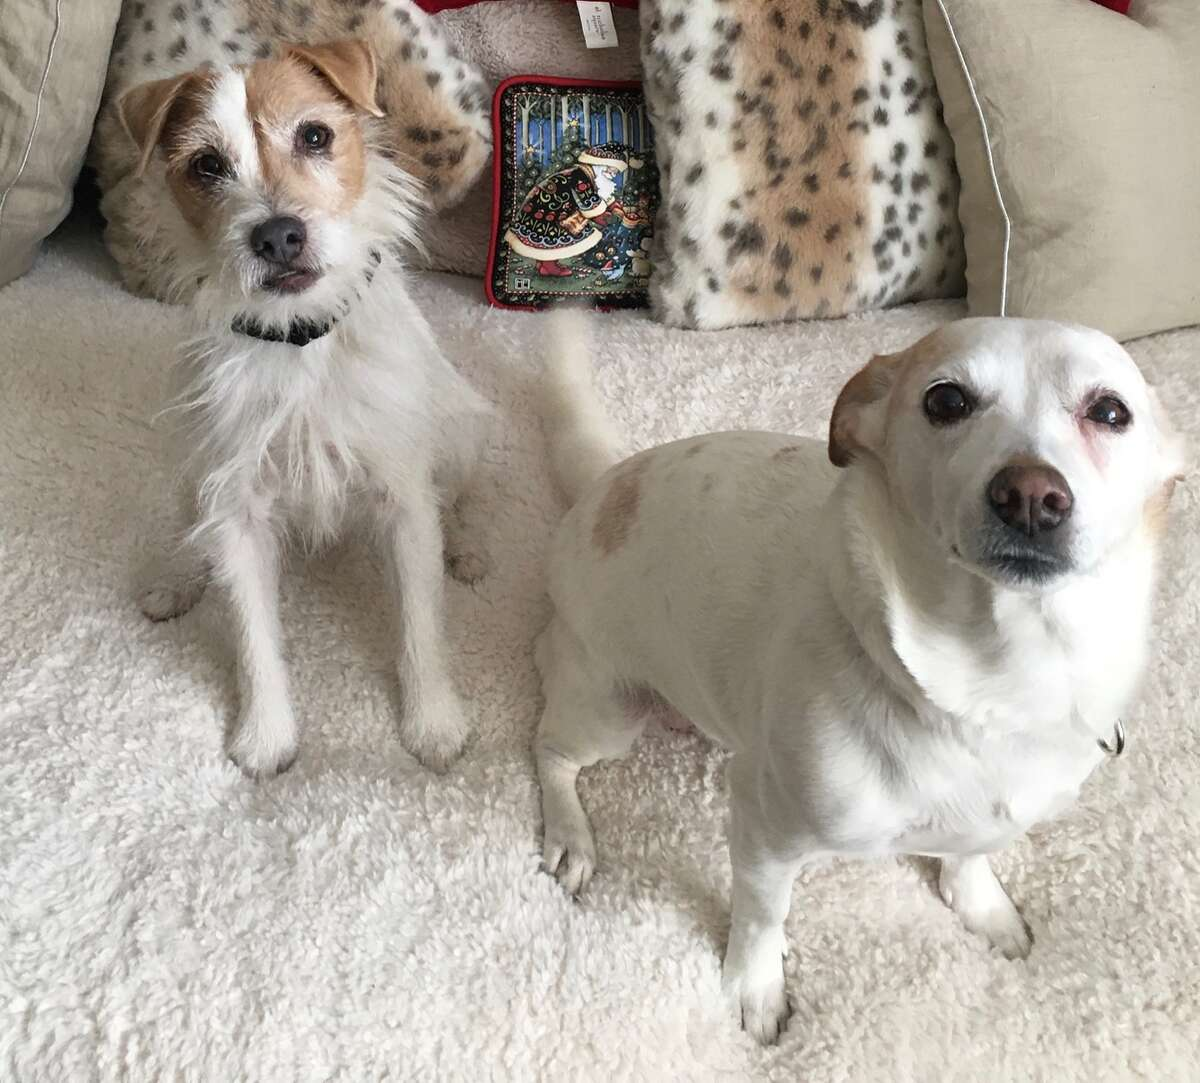 Times Union editor Susan Mehalick shares this picture of her doggies Misha, left, and Maggie.